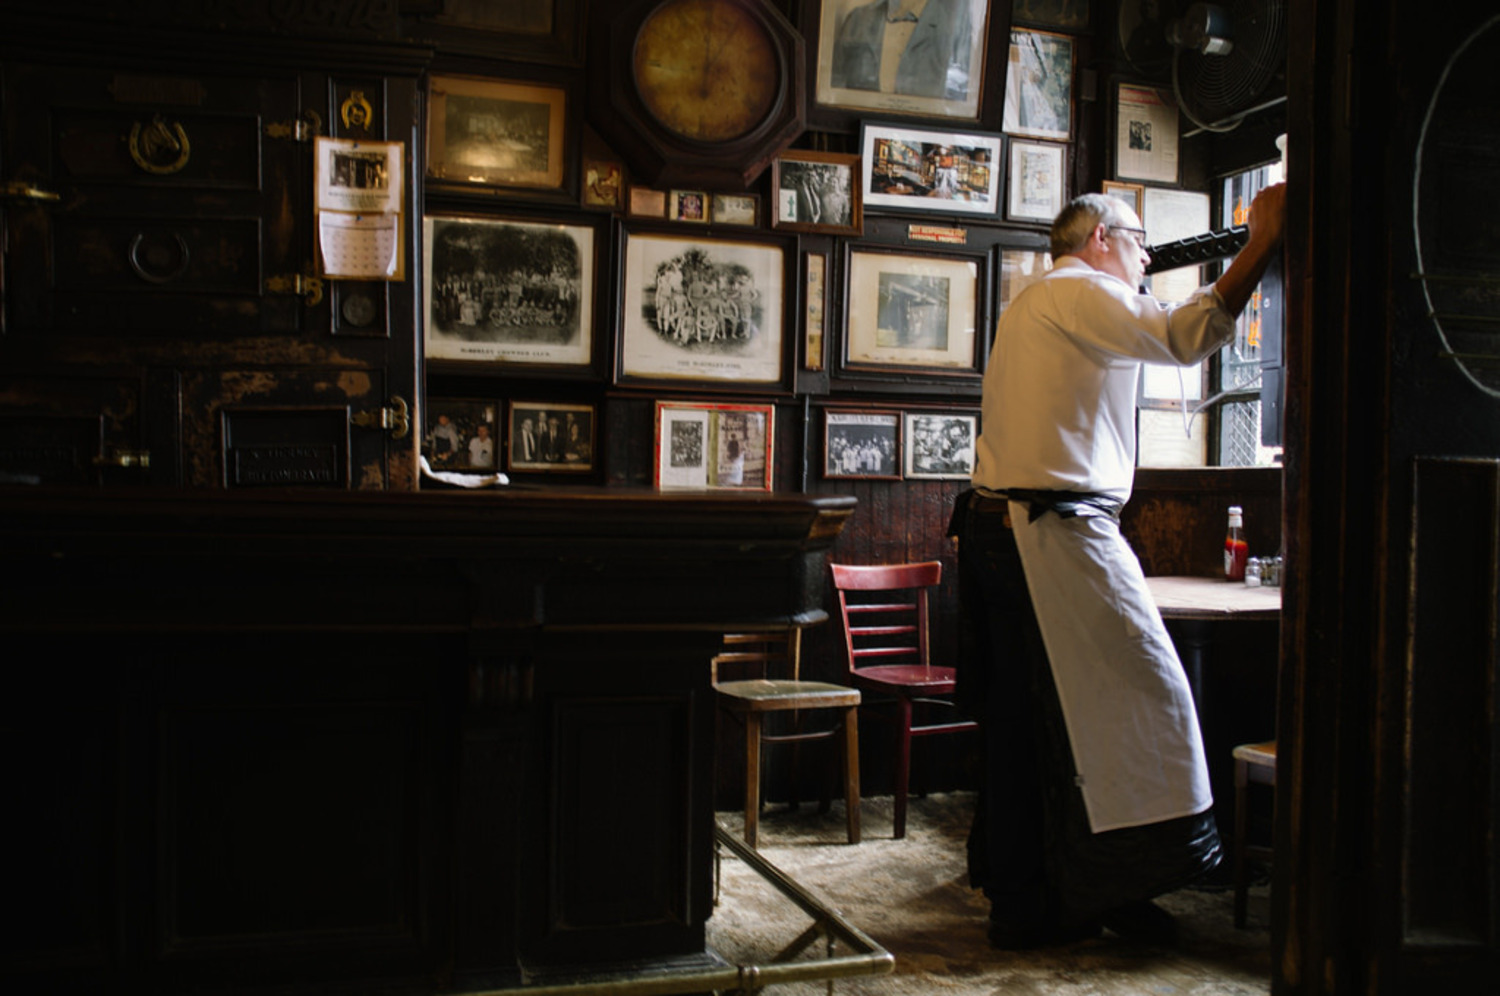 Bartender gazes out the window at McSorley's Old Ale House